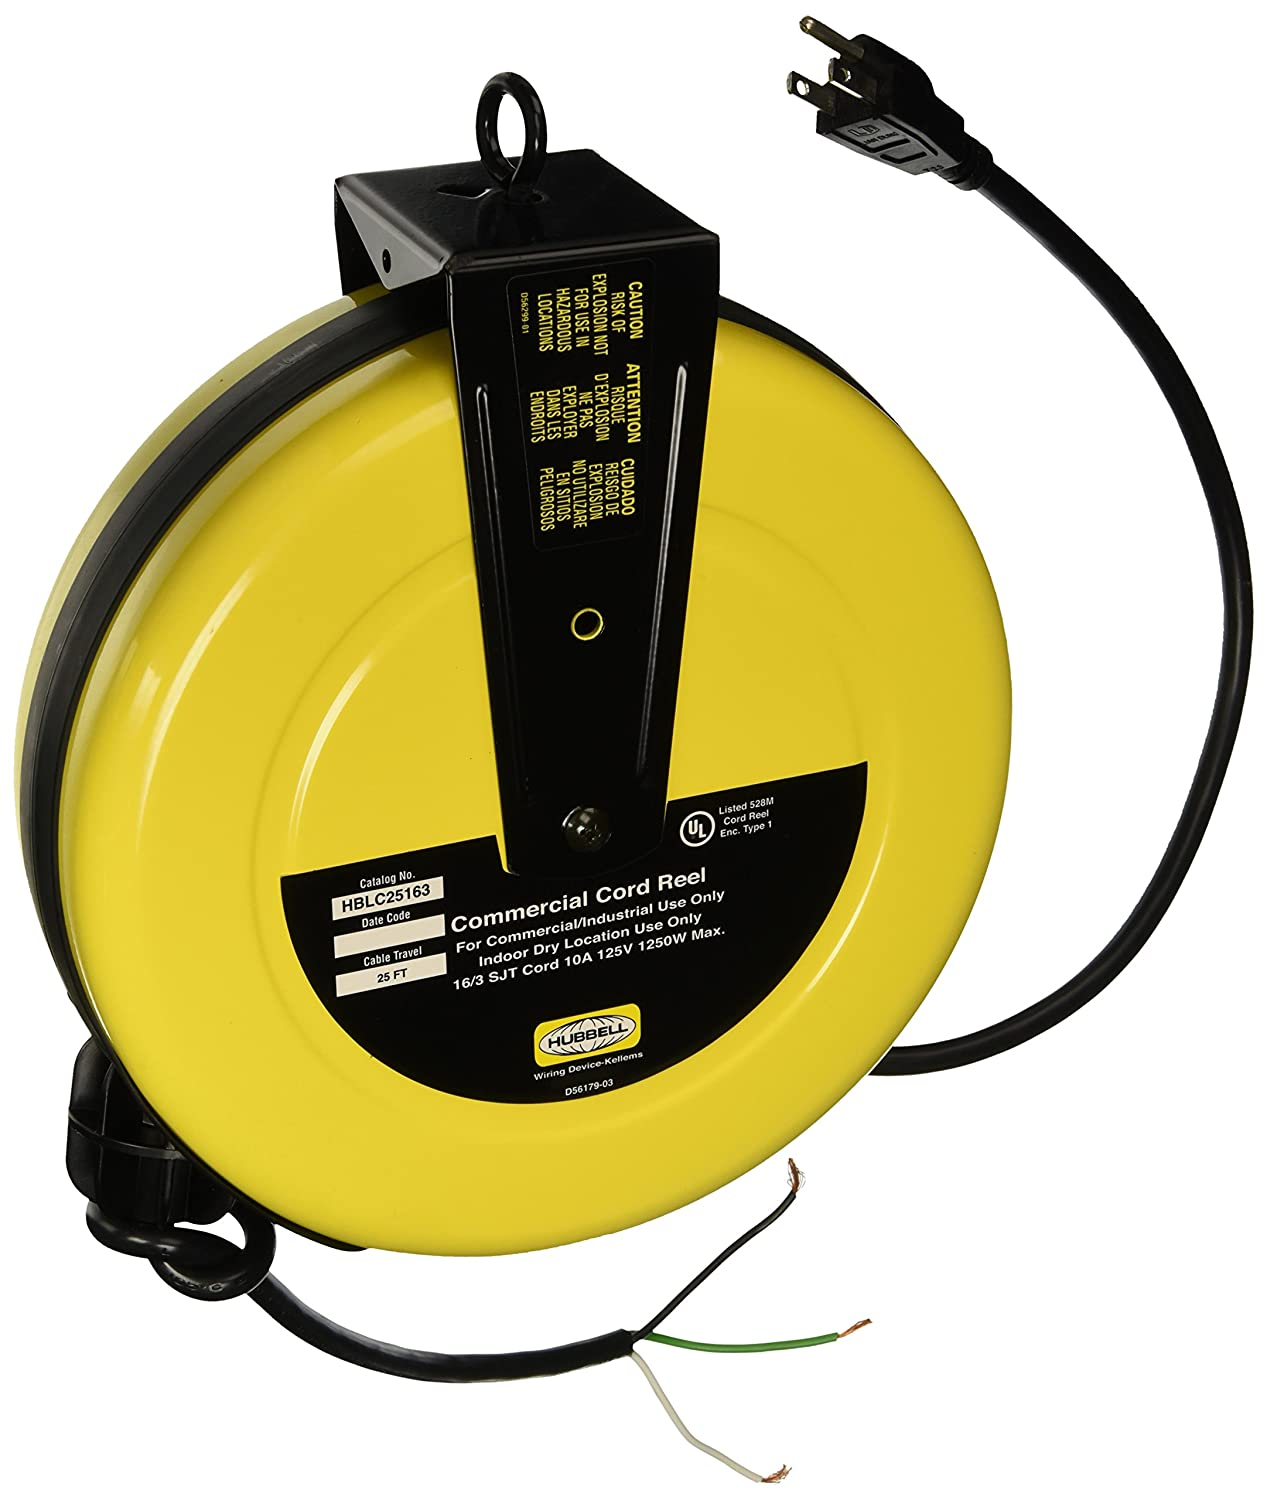 Hubbell Wiring Systems Hblc25163 Commercial Cord Reel With Wire Lead Devices Philippines 25 Cable Length 16 3 Sjt Type 1250w 10 Amp 125vac Yellow